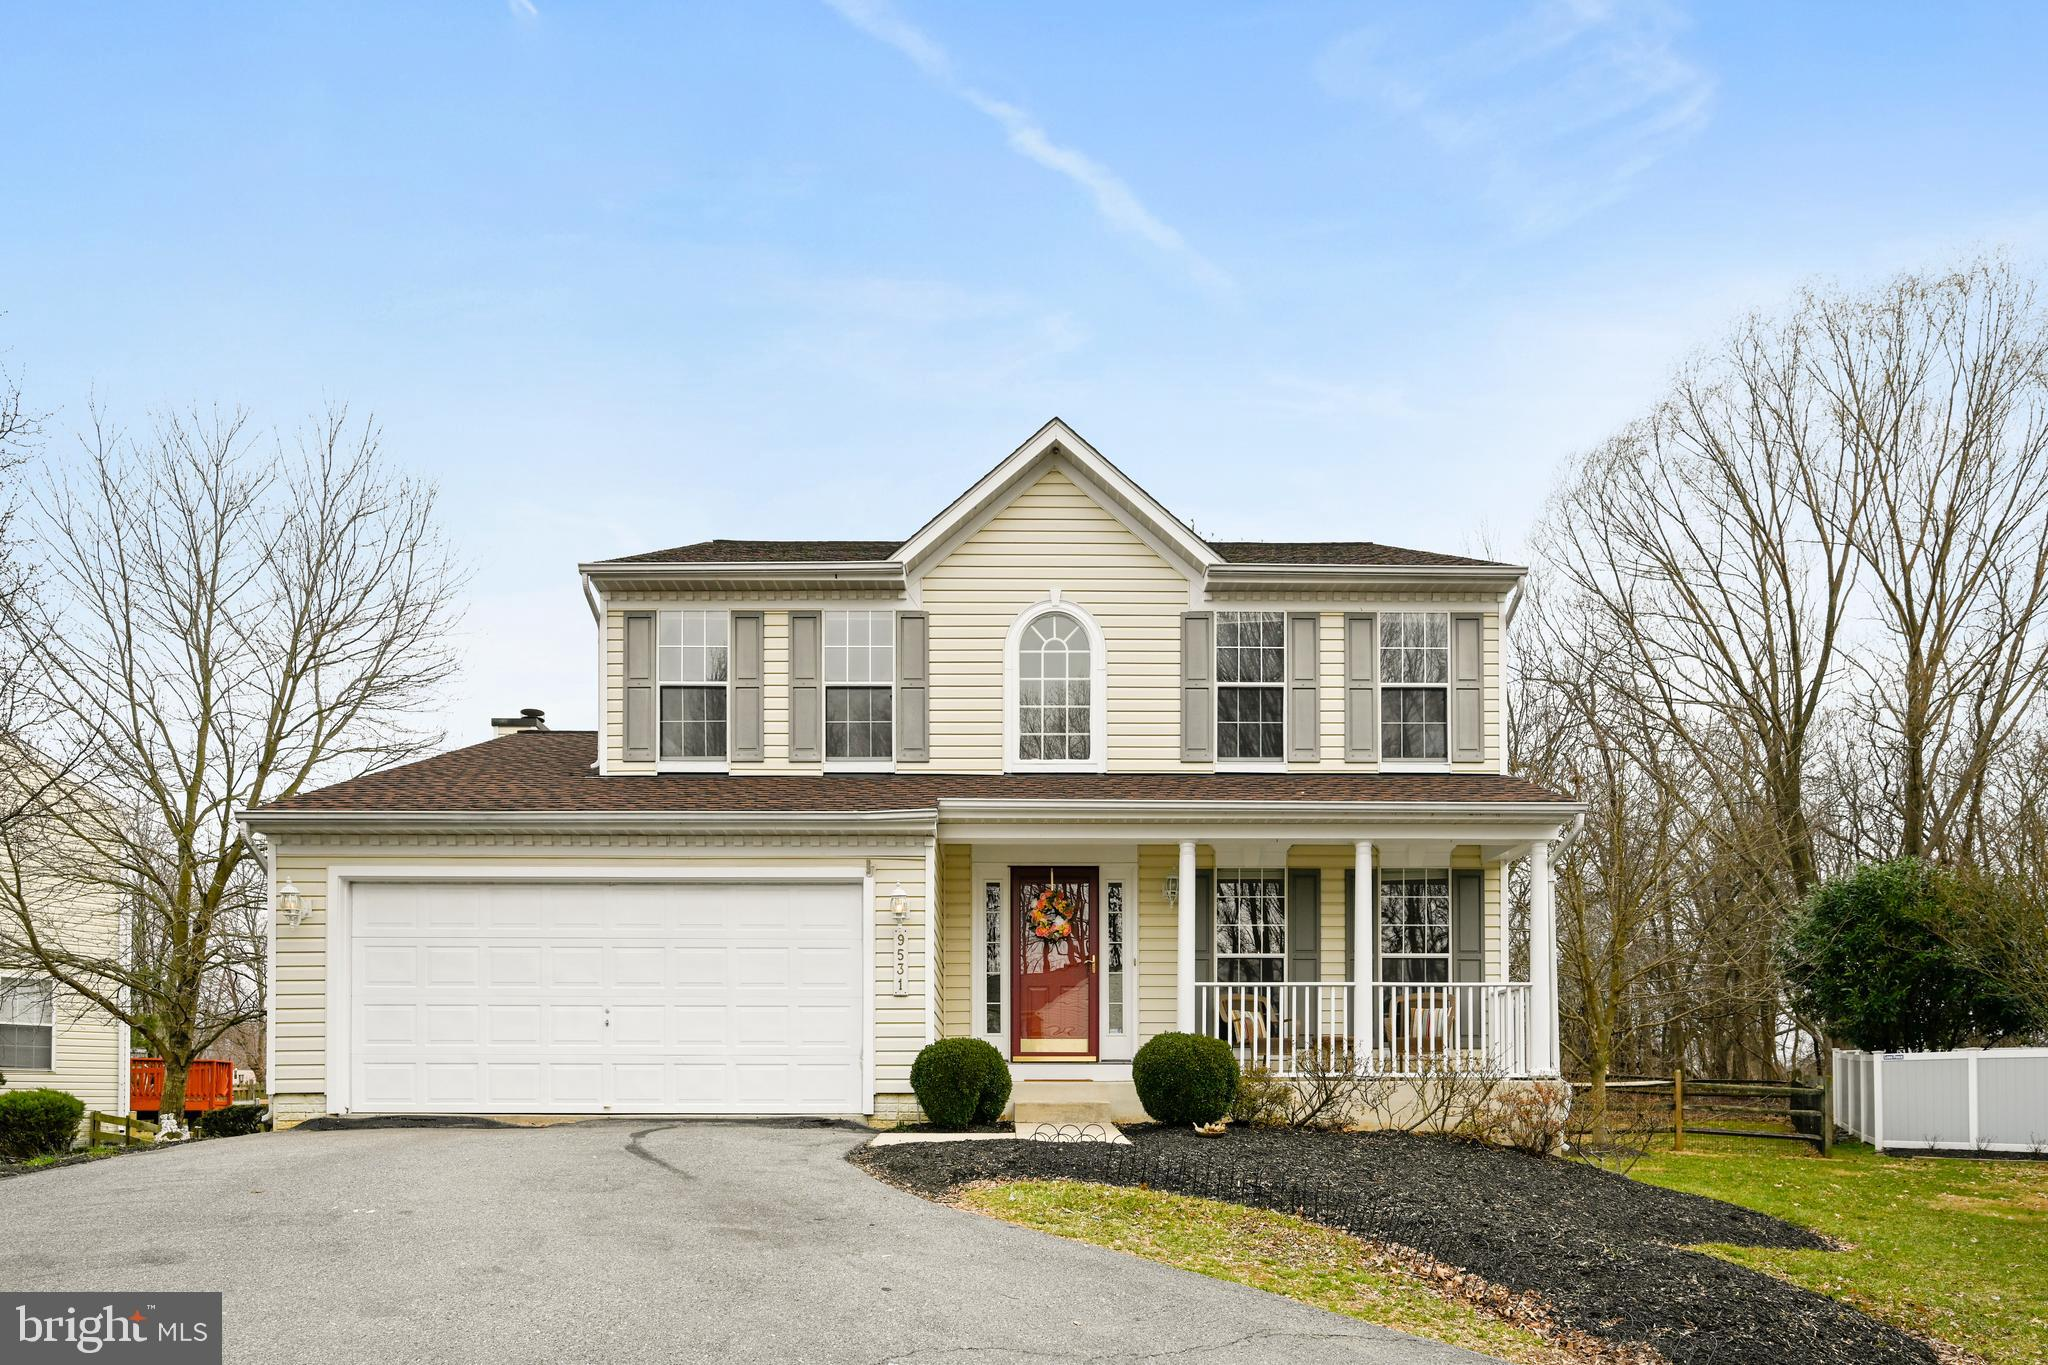 9531 RIDGEVIEW DRIVE, COLUMBIA, MD 21046